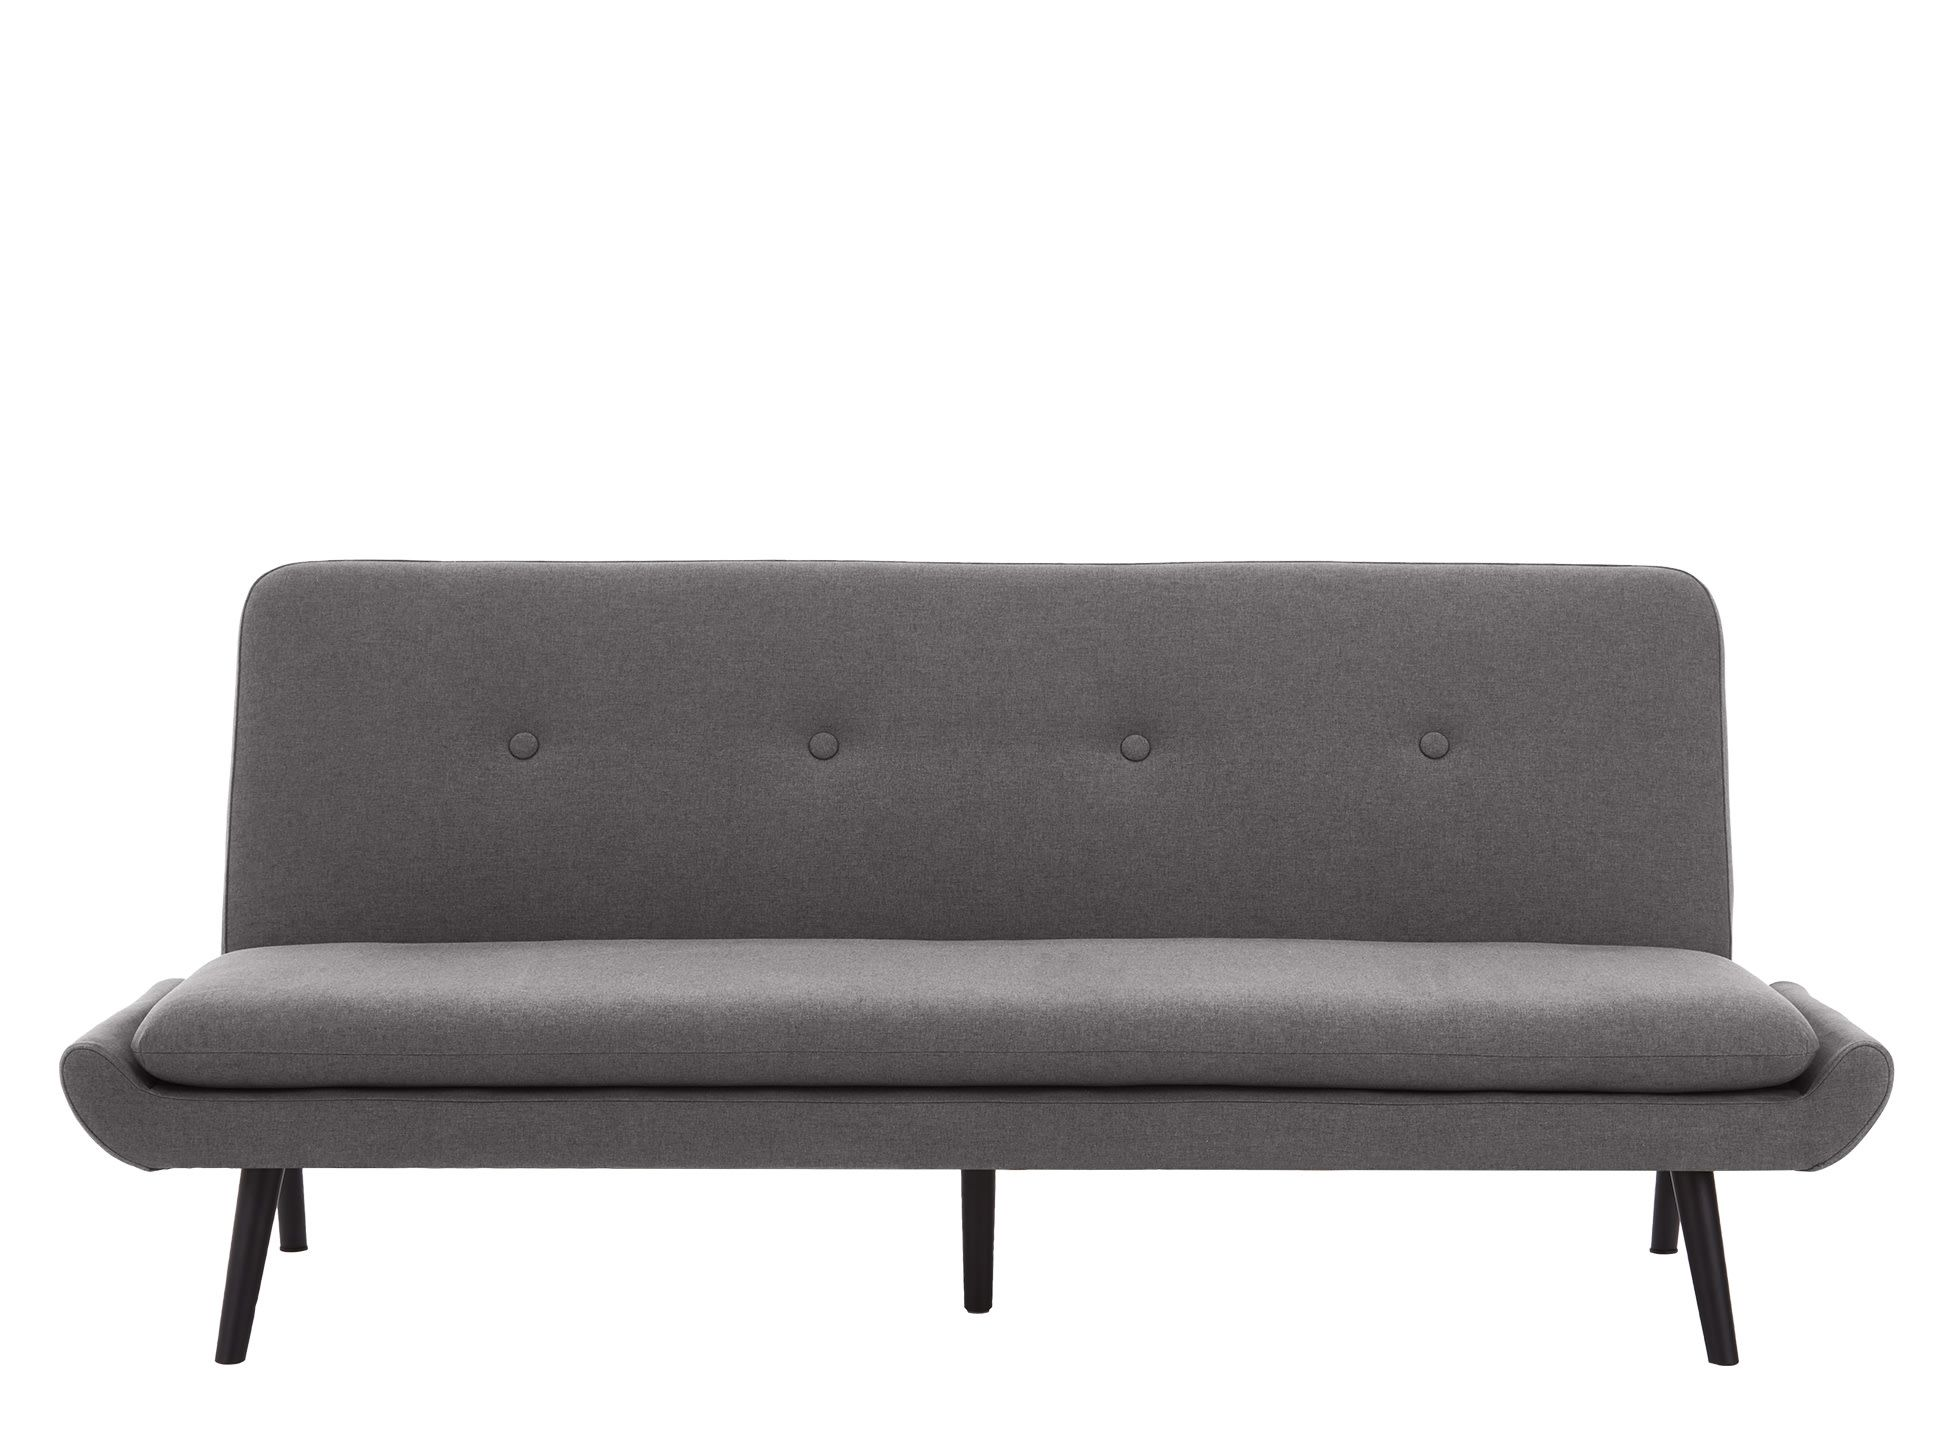 Made Marl Grey Sofa Bed Sofa Bed Small Sofa Sofa